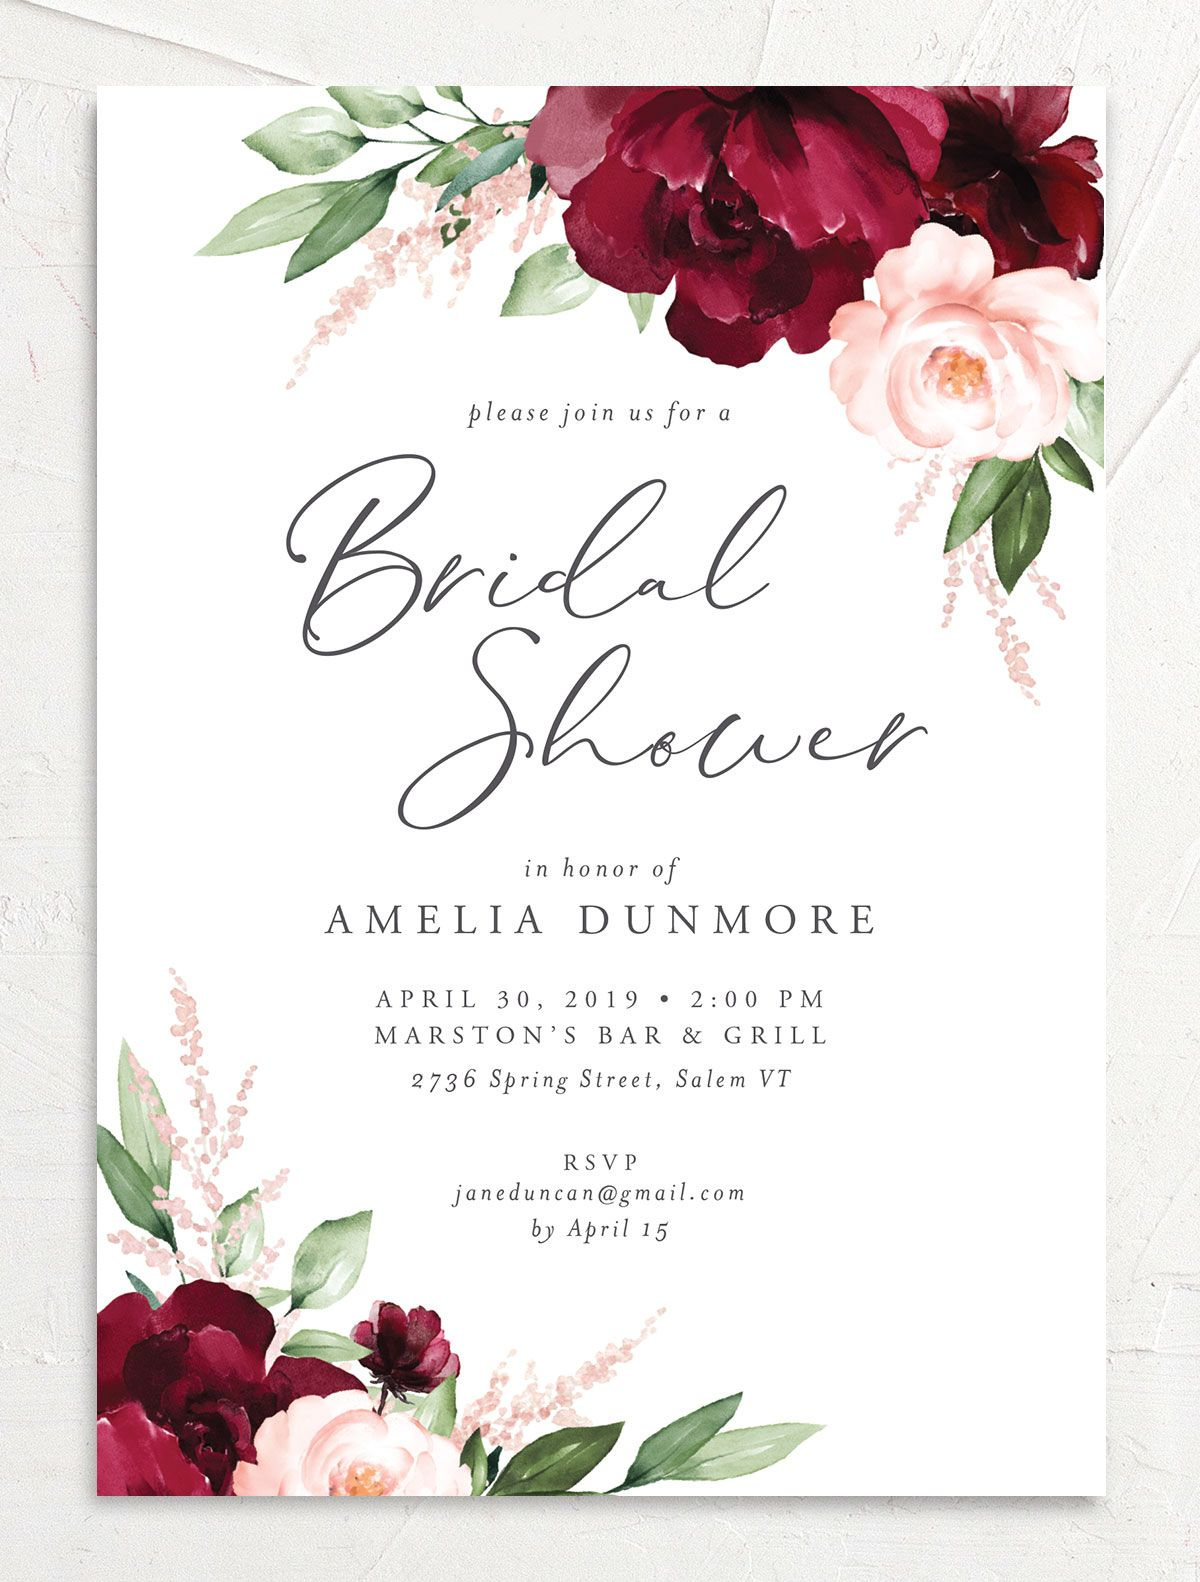 Beloved Floral Bridal Shower Invites in red